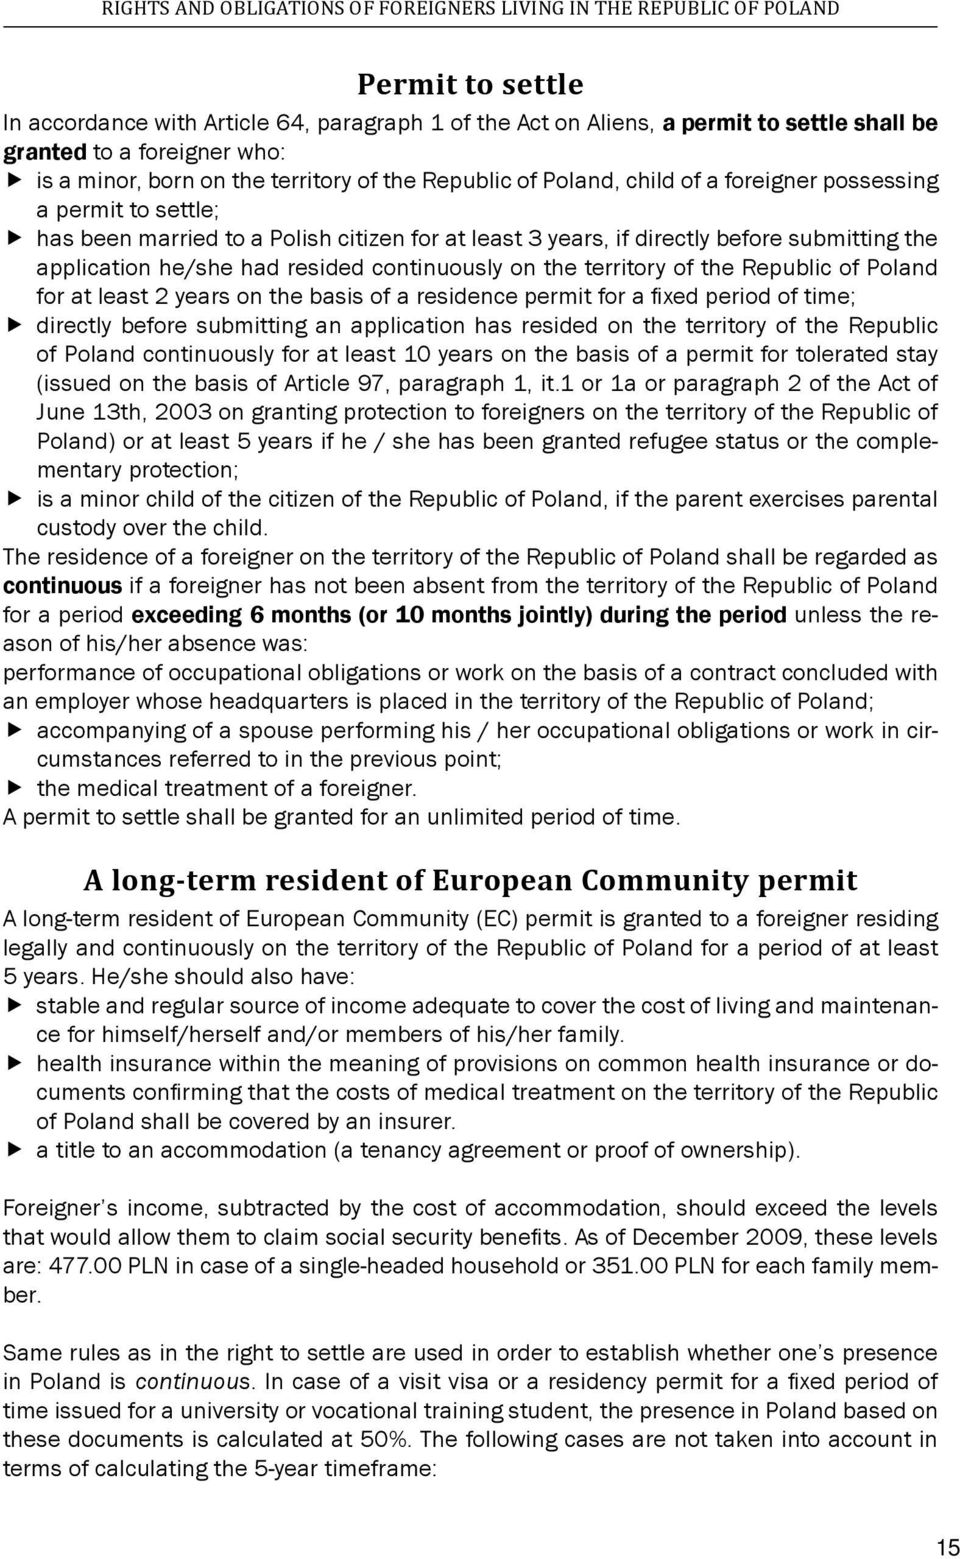 before submitting the application he/she had resided continuously on the territory of the Republic of Poland for at least 2 years on the basis of a residence permit for a fixed period of time;